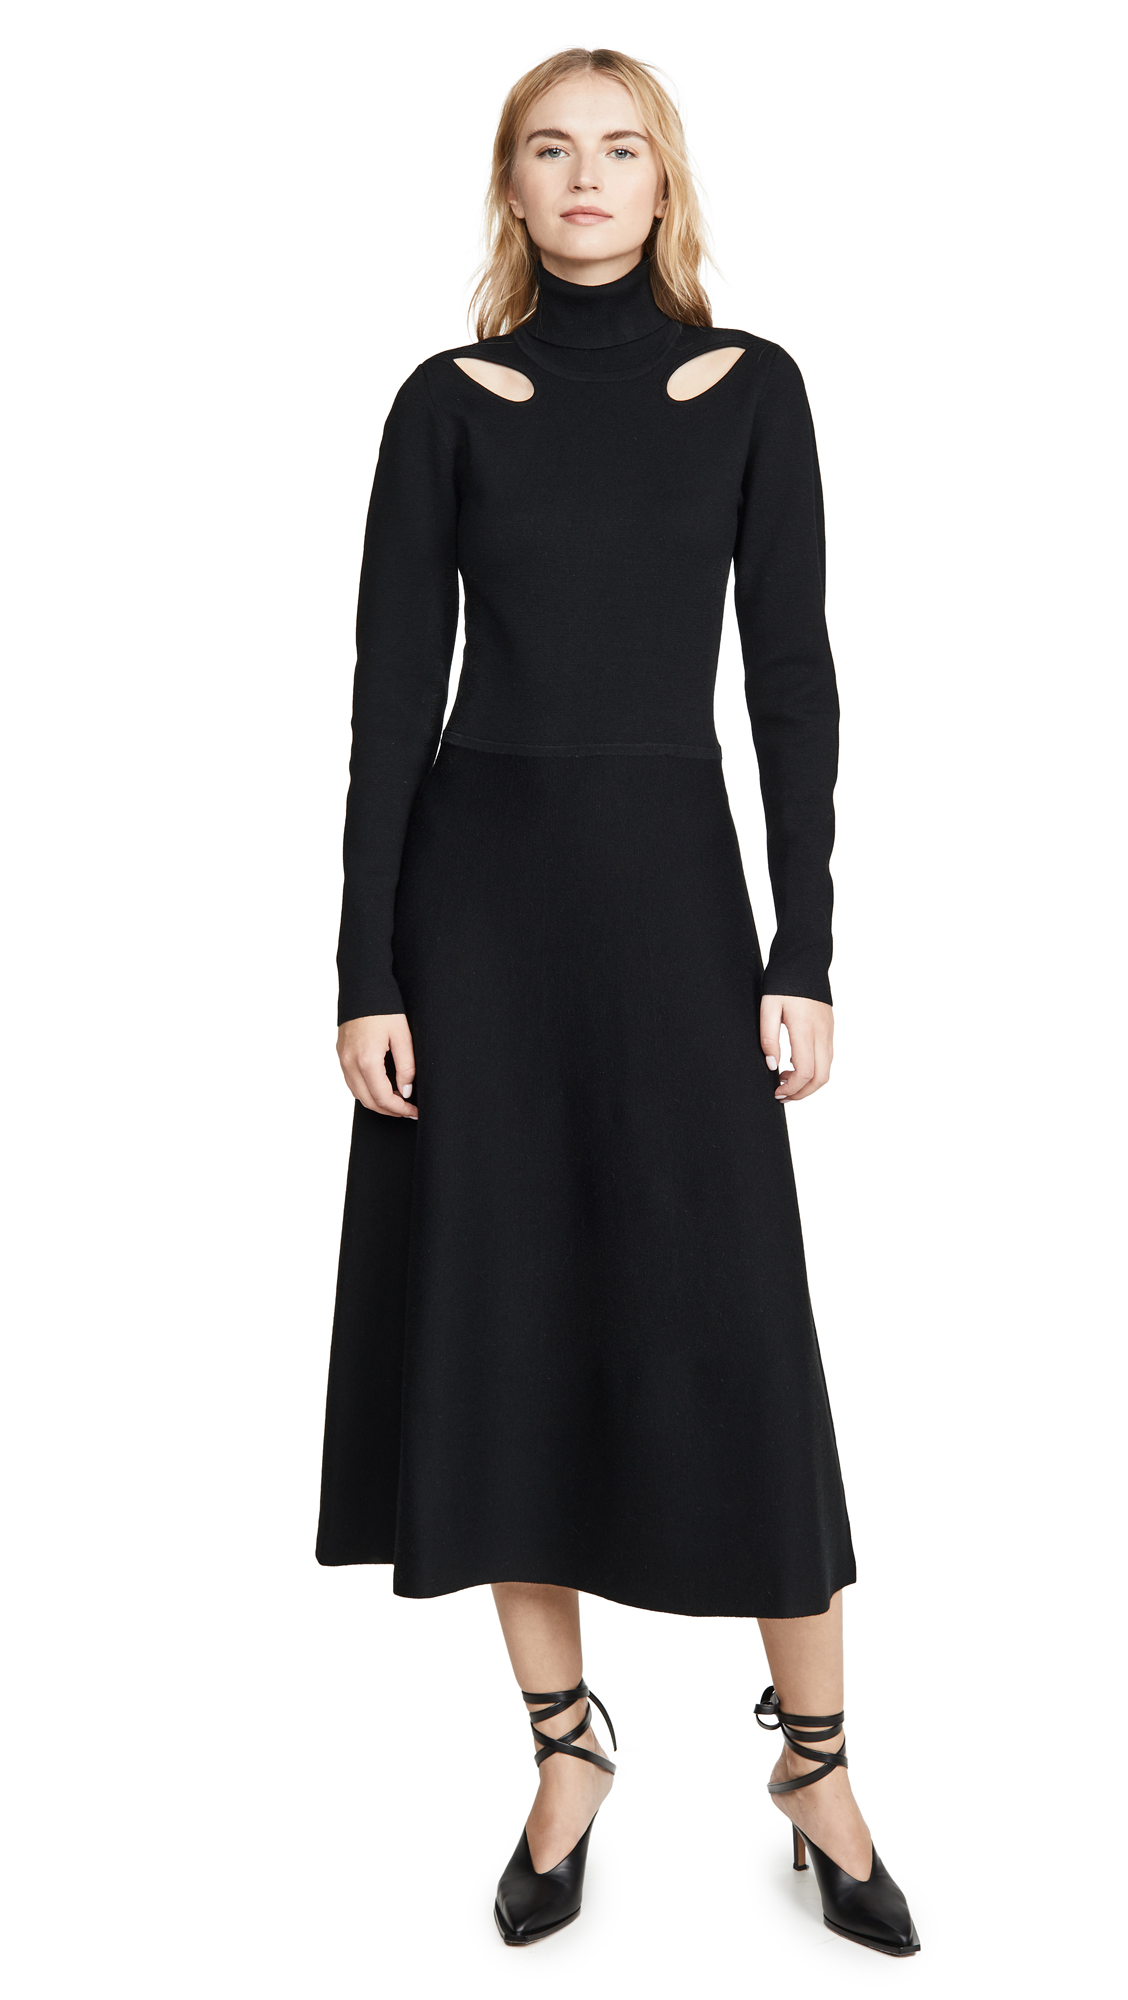 Jason Wu Merino Knit Cutout Dress - 60% Off Sale